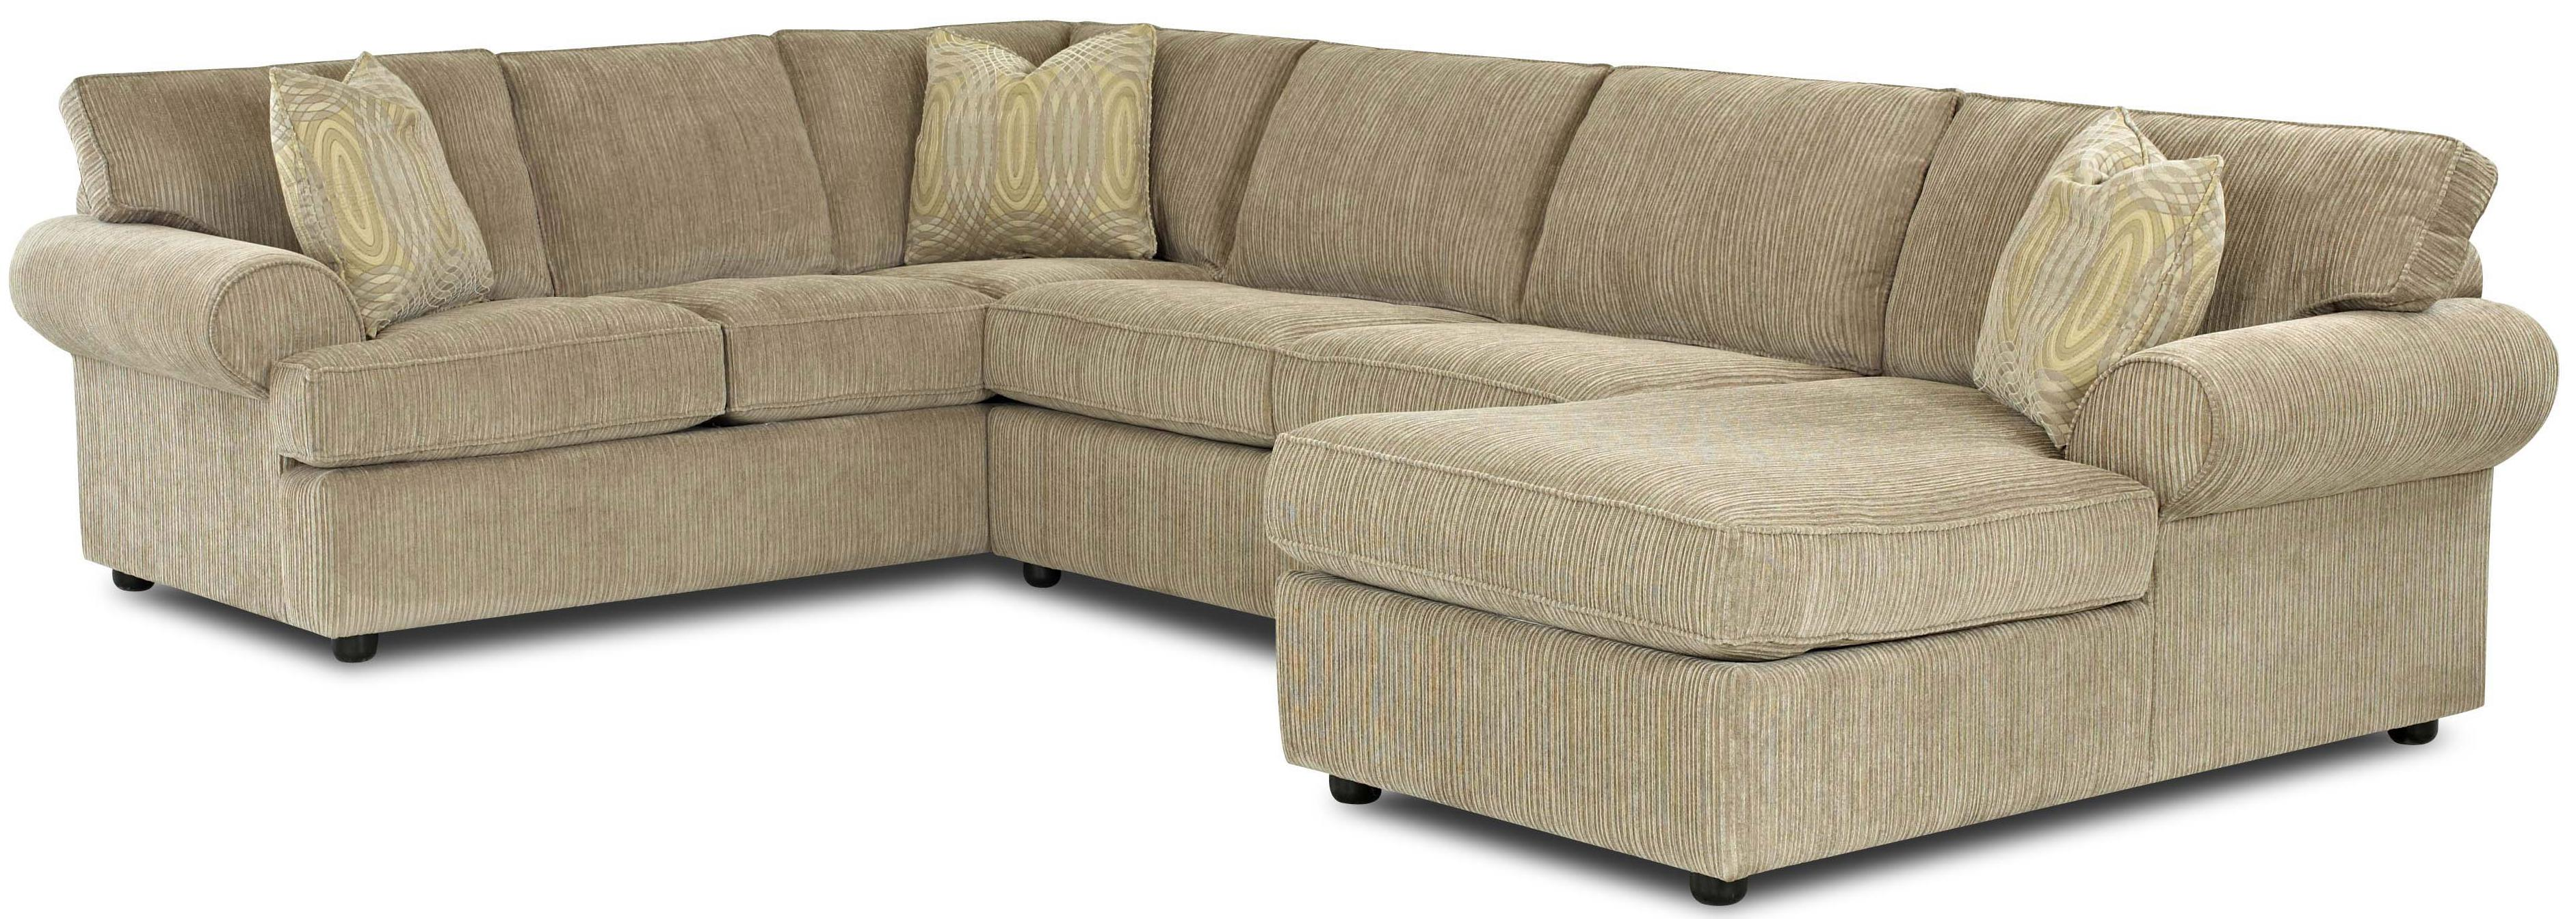 Transitional Sectional Sofa with Rolled Arms and Right Chaise by